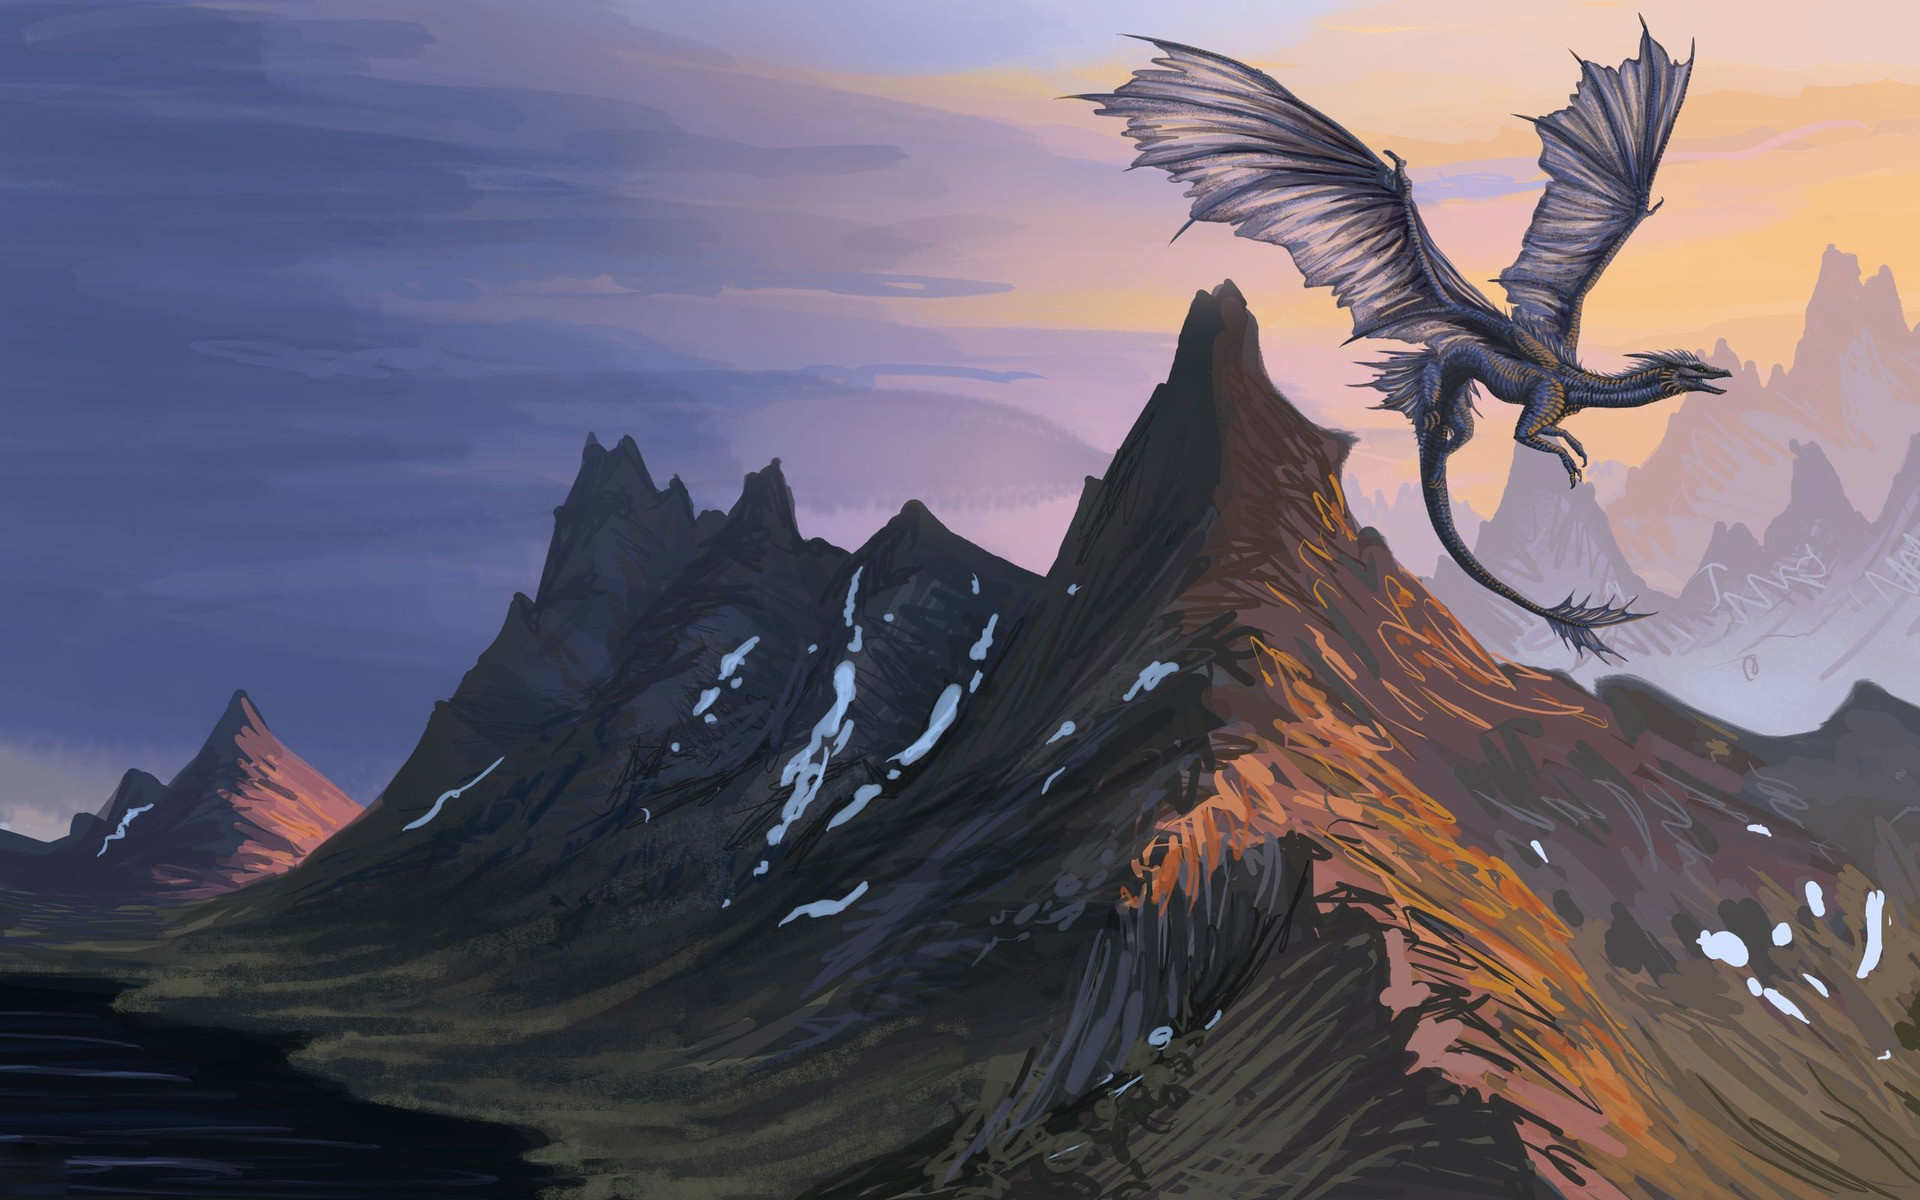 Flying Dragon: Flying Dragon Wallpaper (73+ Pictures